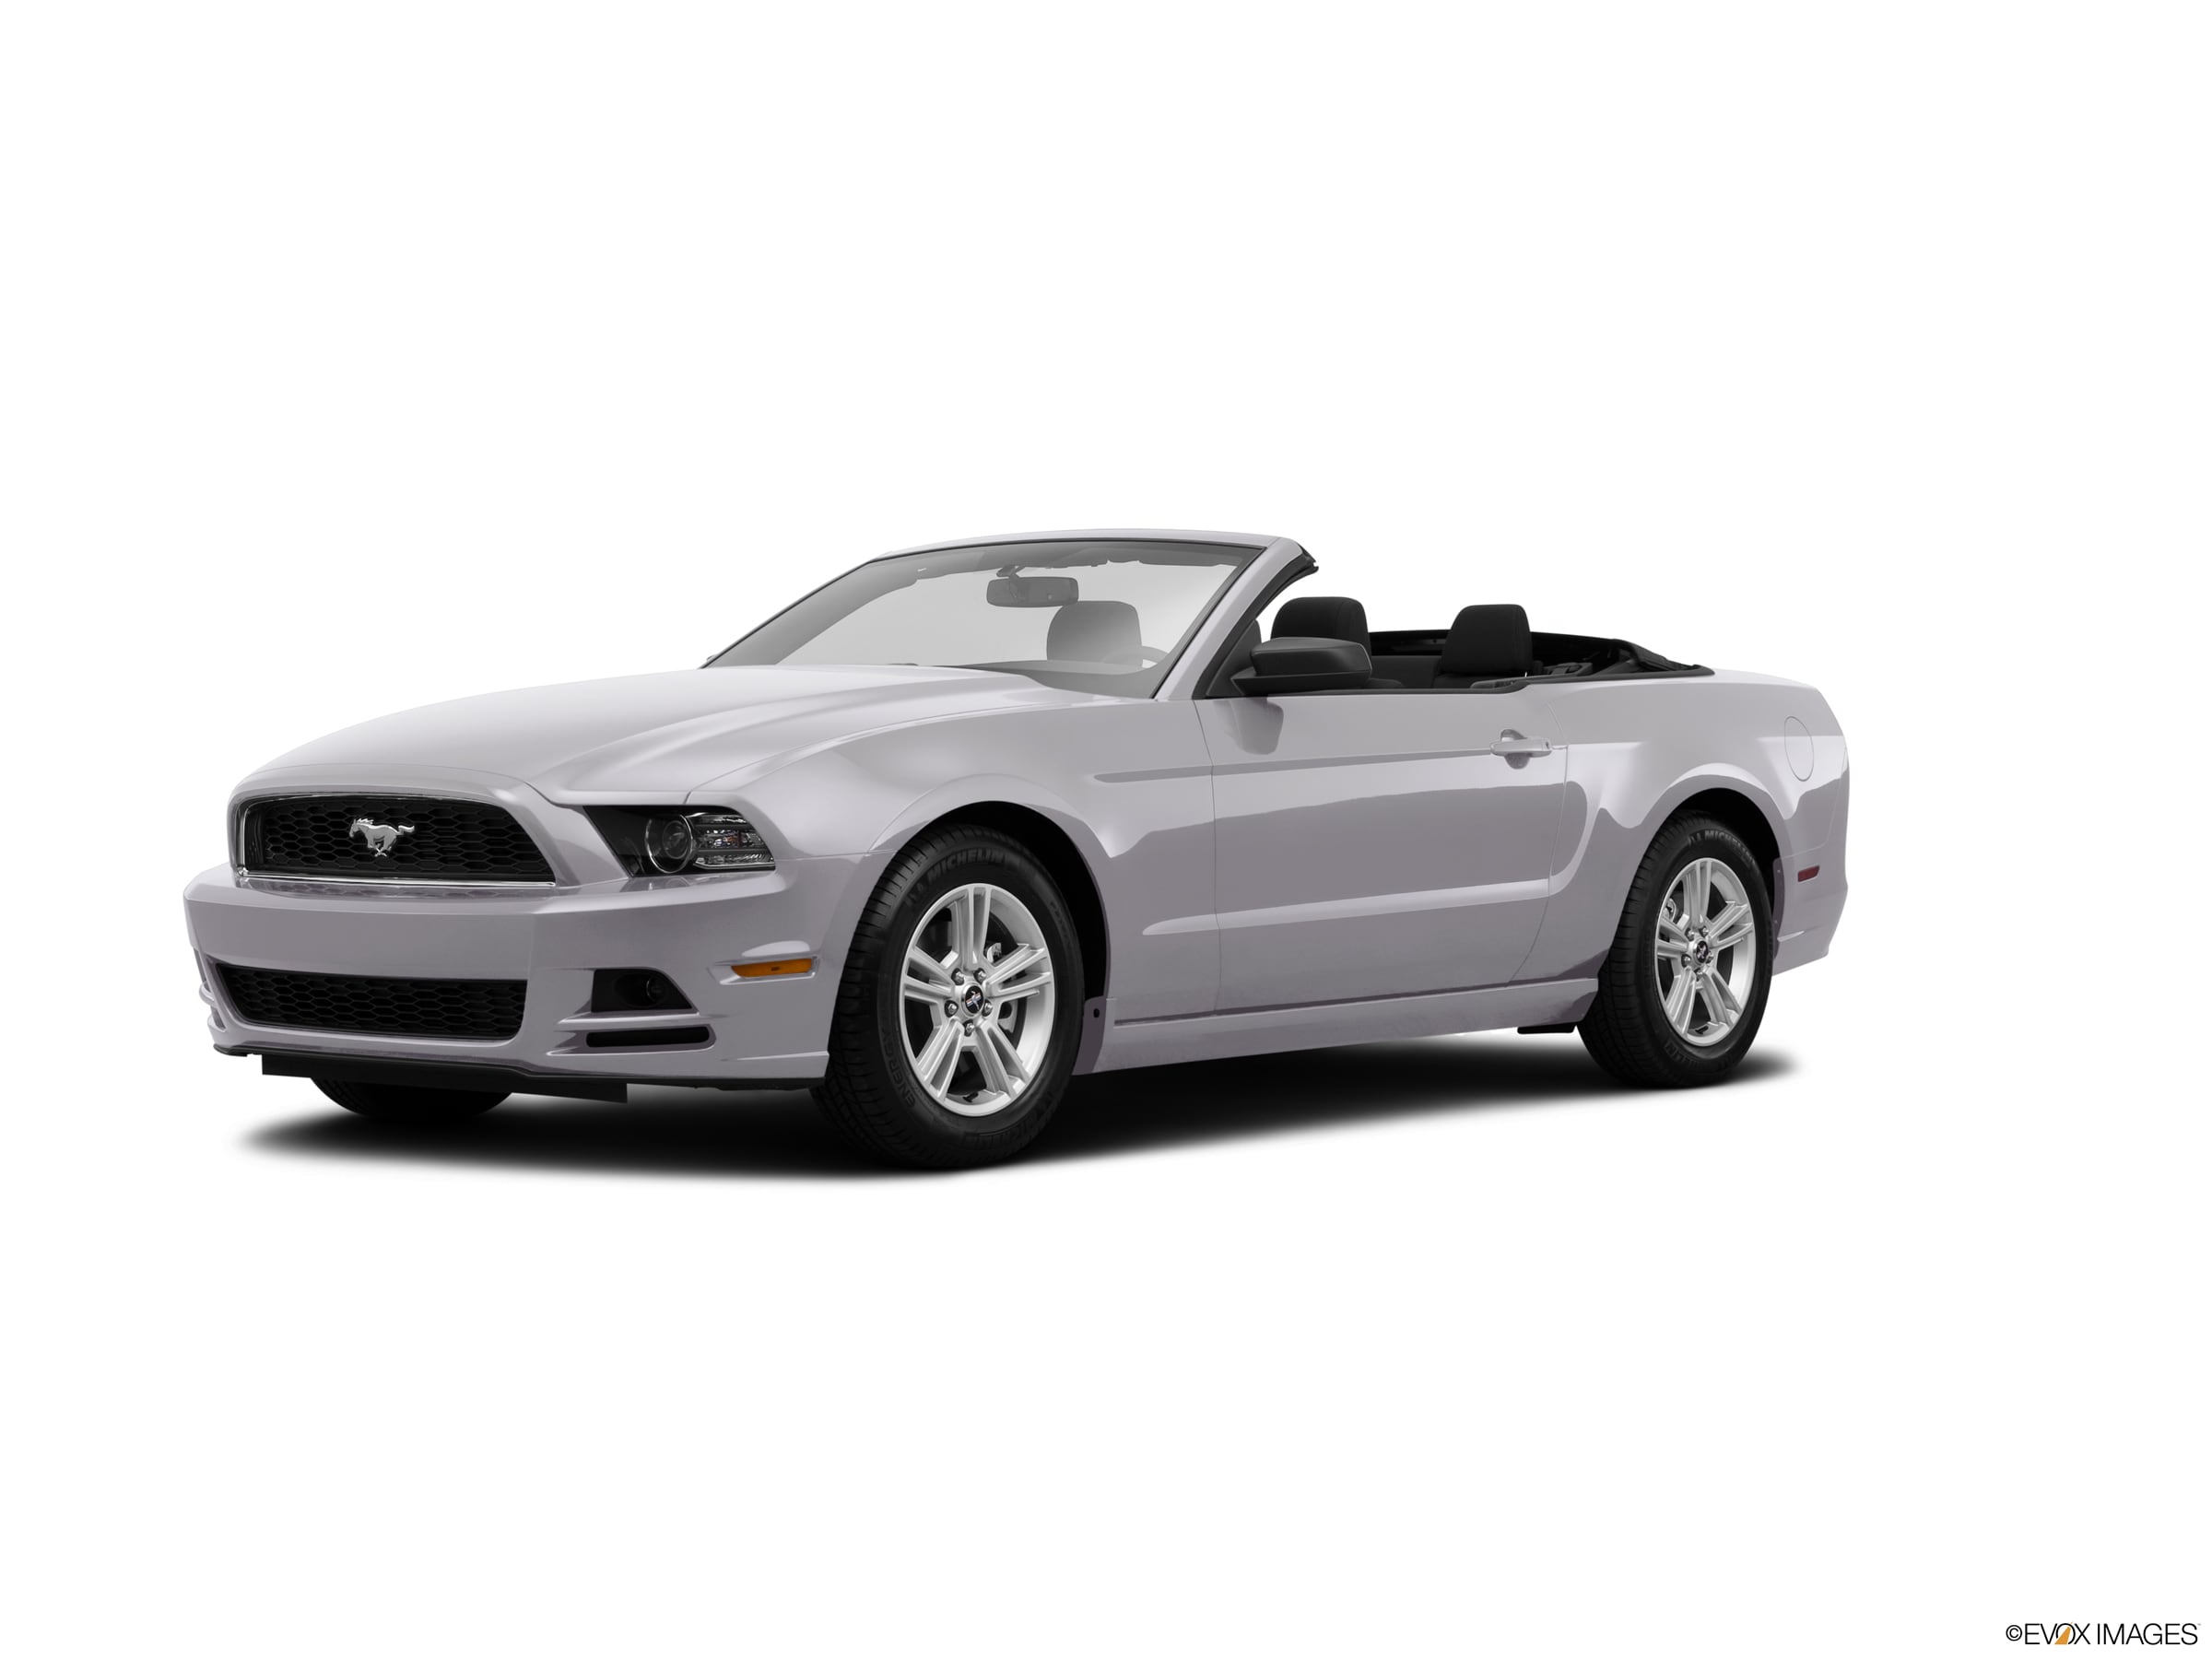 used 2014 Ford Mustang car